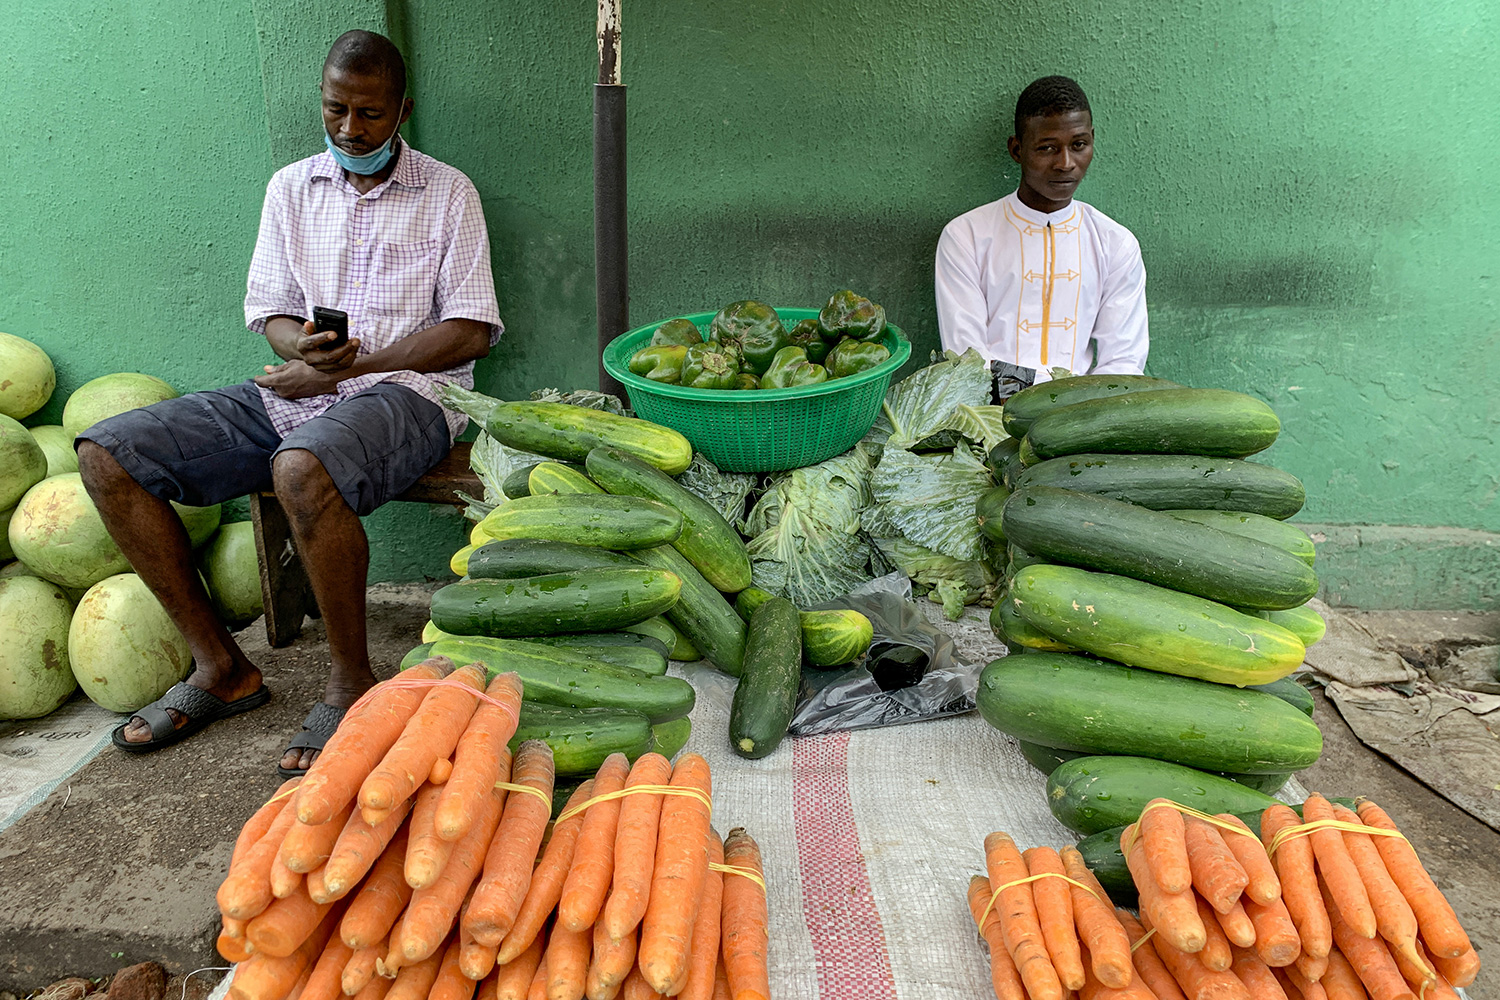 The photo shows two men amid carots, melons, zucchini and other fresh foods.